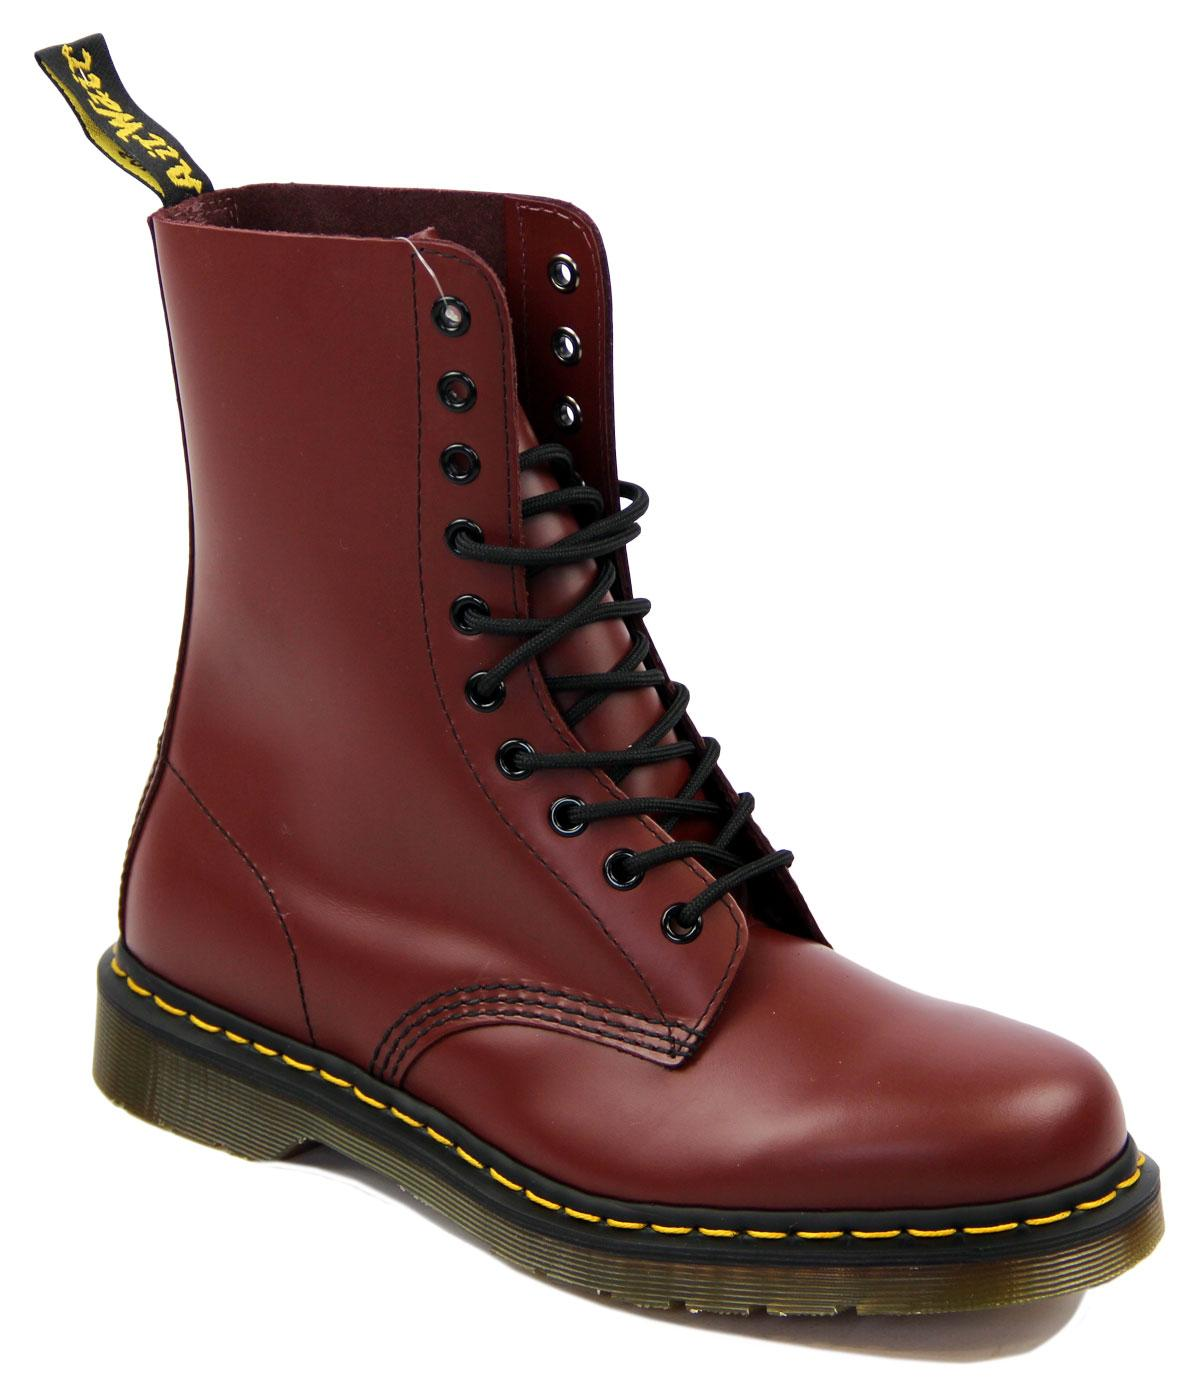 1490 DR MARTENS Retro Cherry Red 10 Eyelet Boots